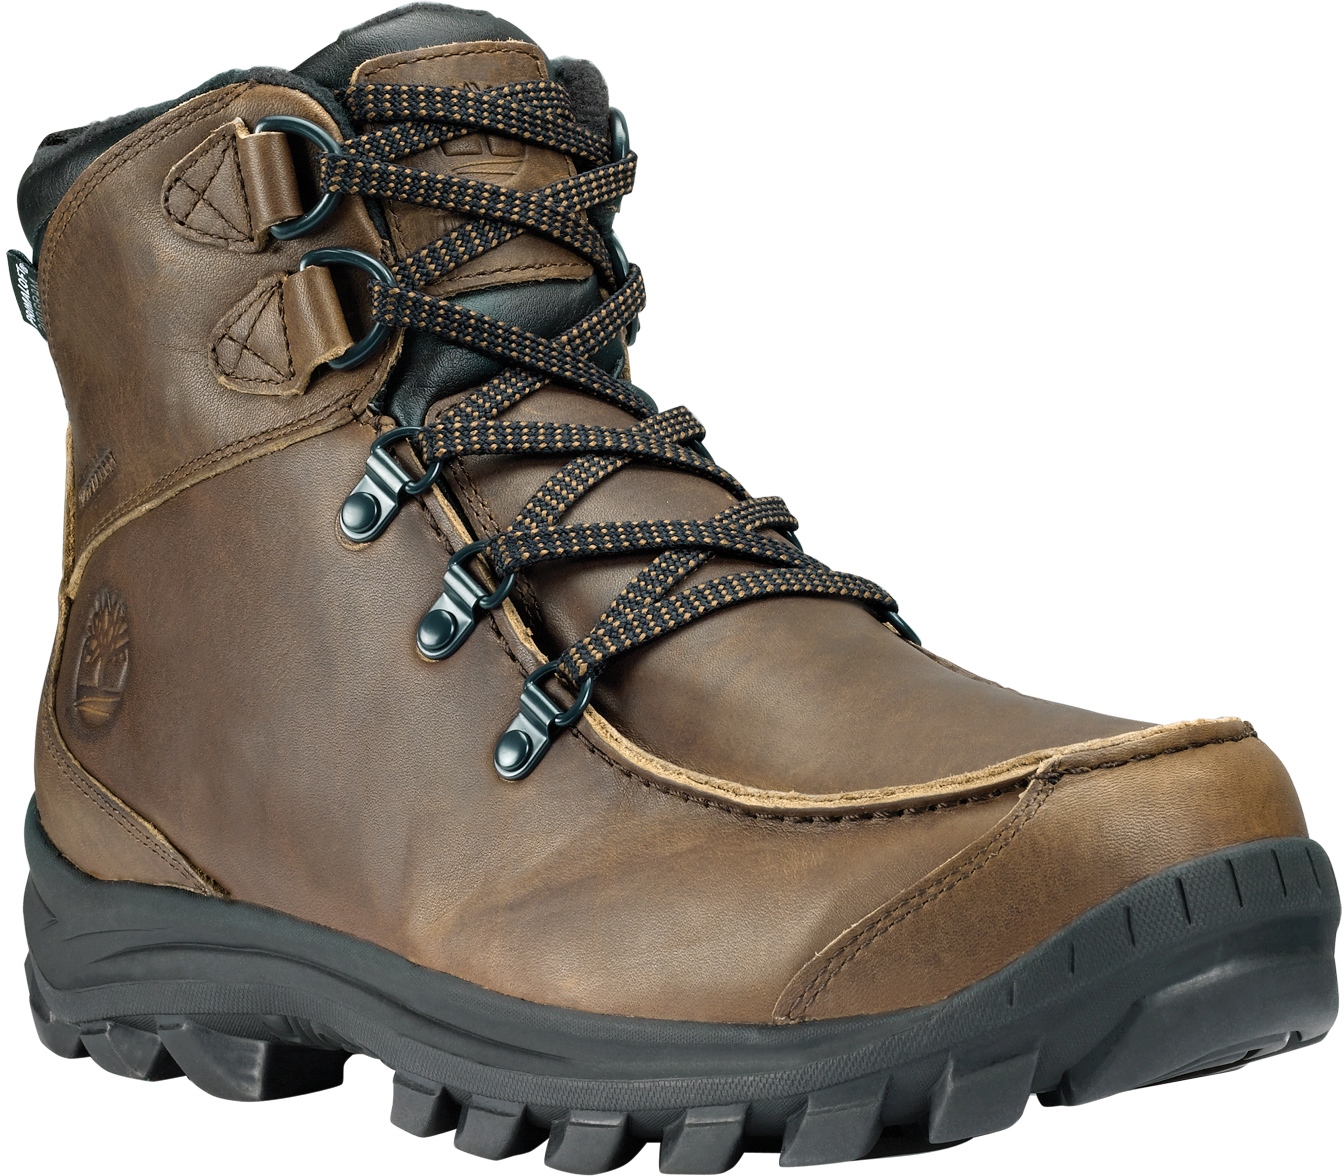 83b9c1af586 Timberland EarthKeepers Chillberg Mid Waterproof Winter - Men's